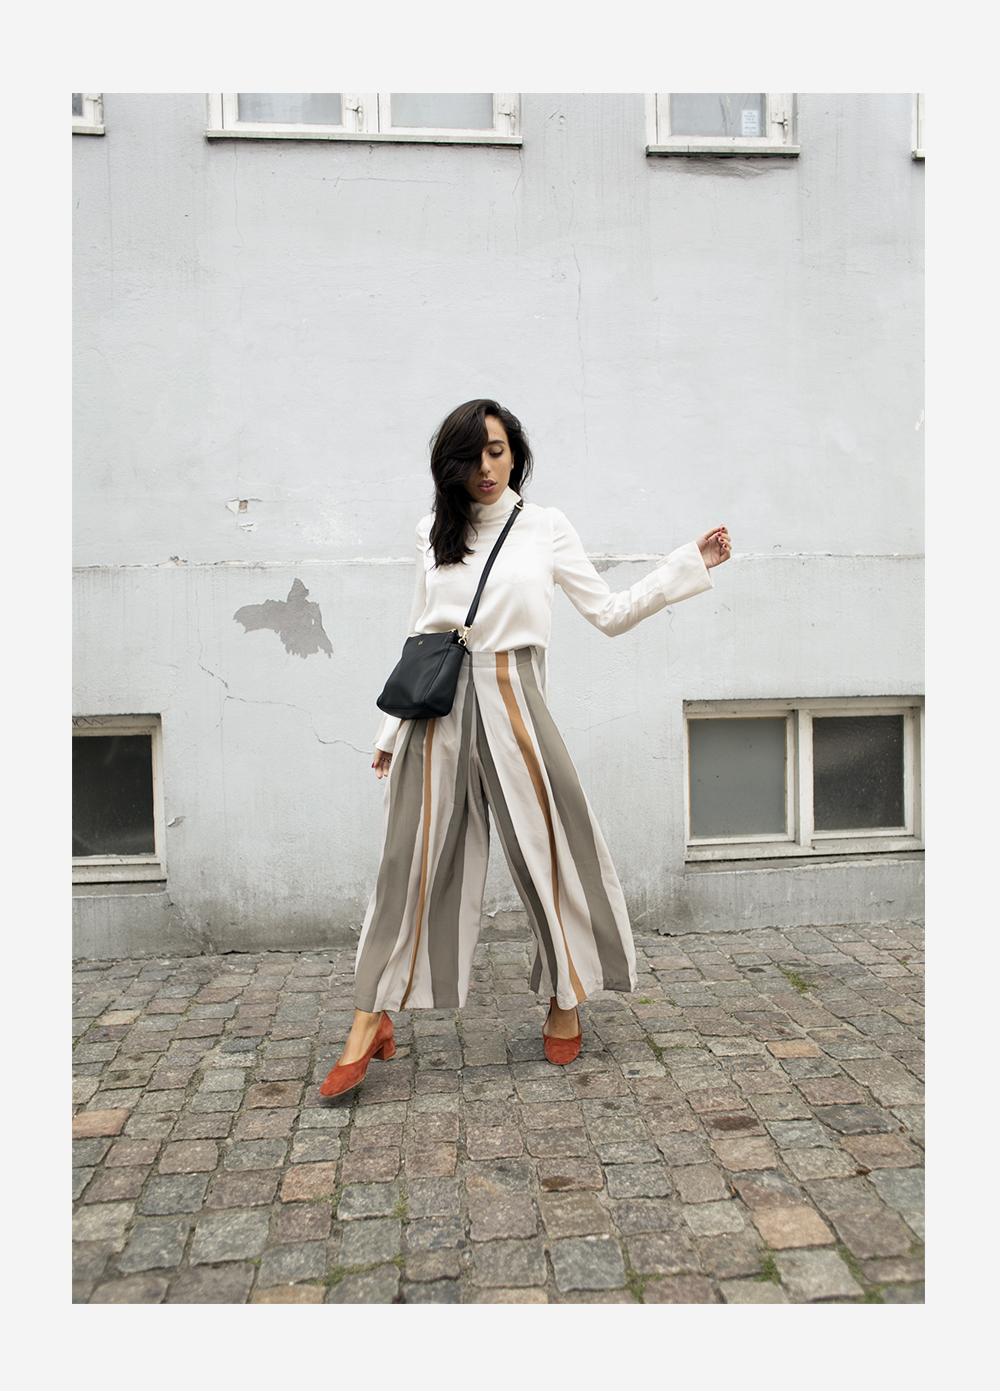 sania claus demina randiga byxor striped trousers pants suede pumps block heel ballerina by malene birger lo and sons bag the pearl_2b